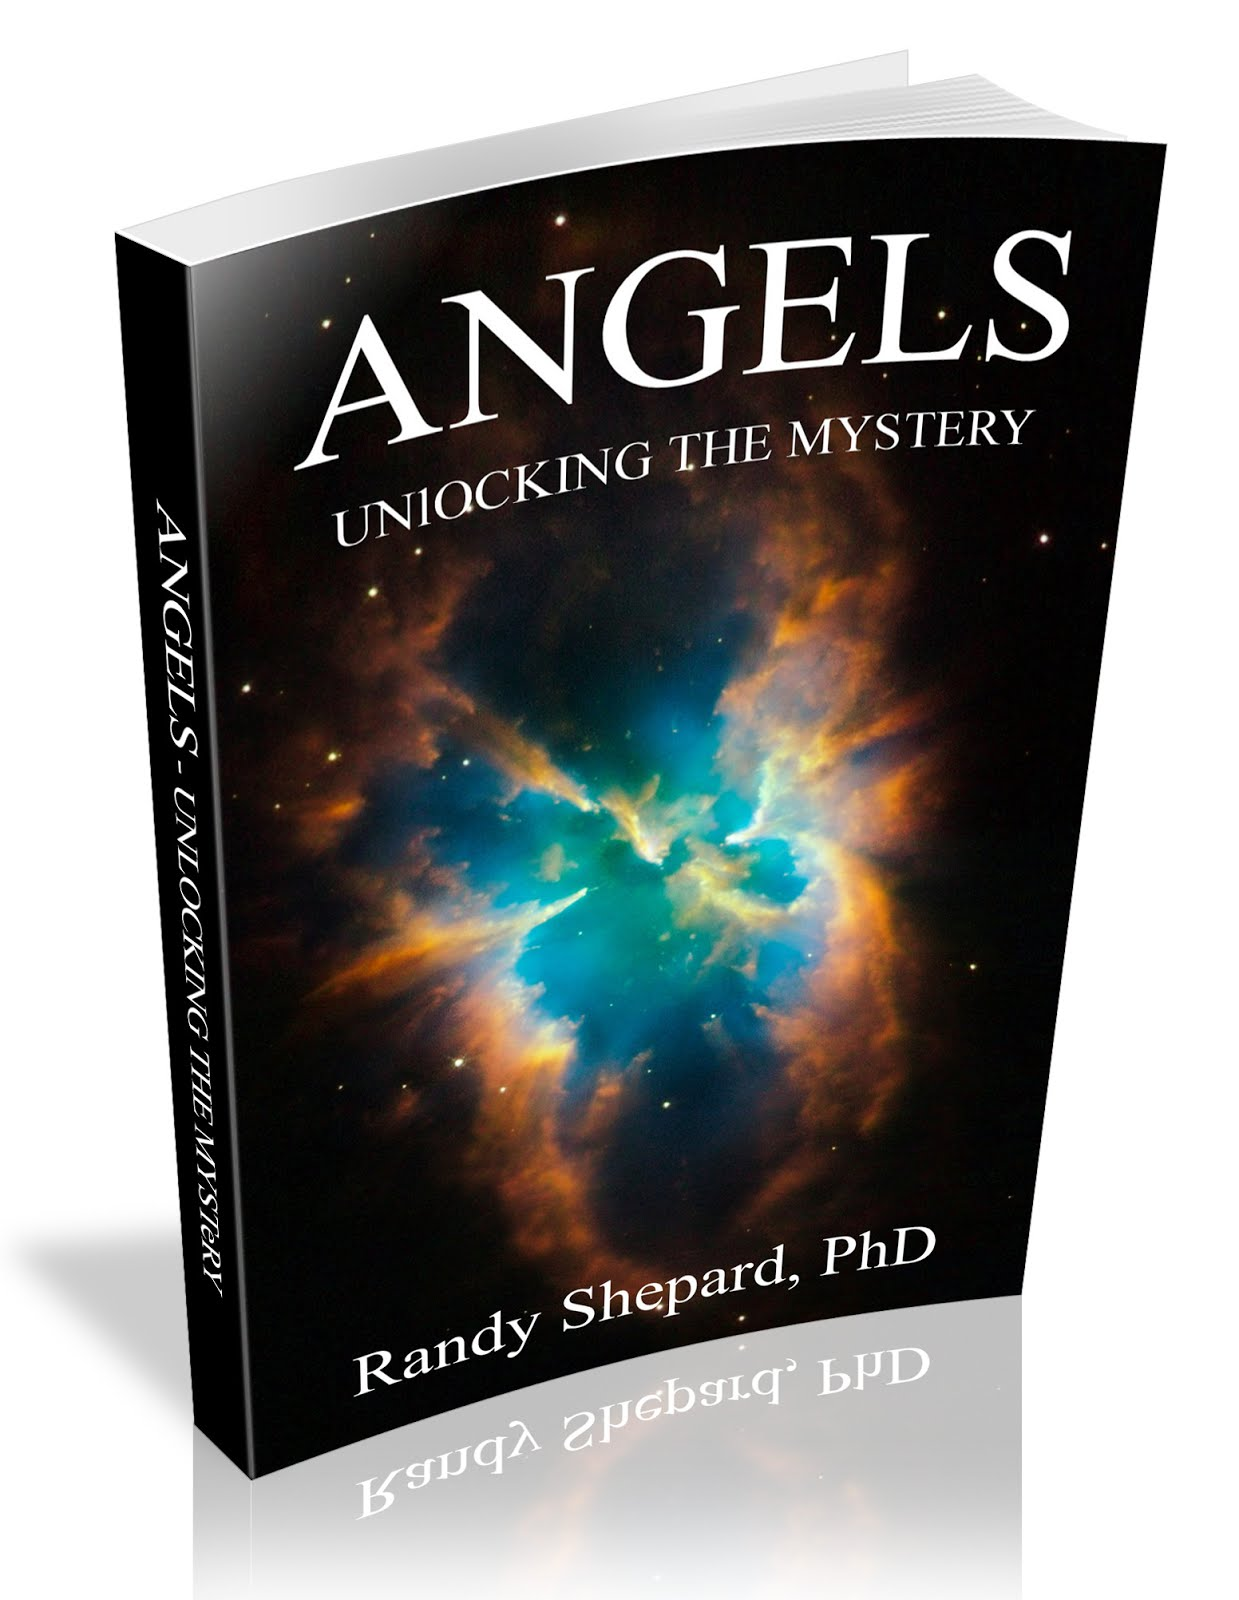 Angels: Unlocking The Mystery